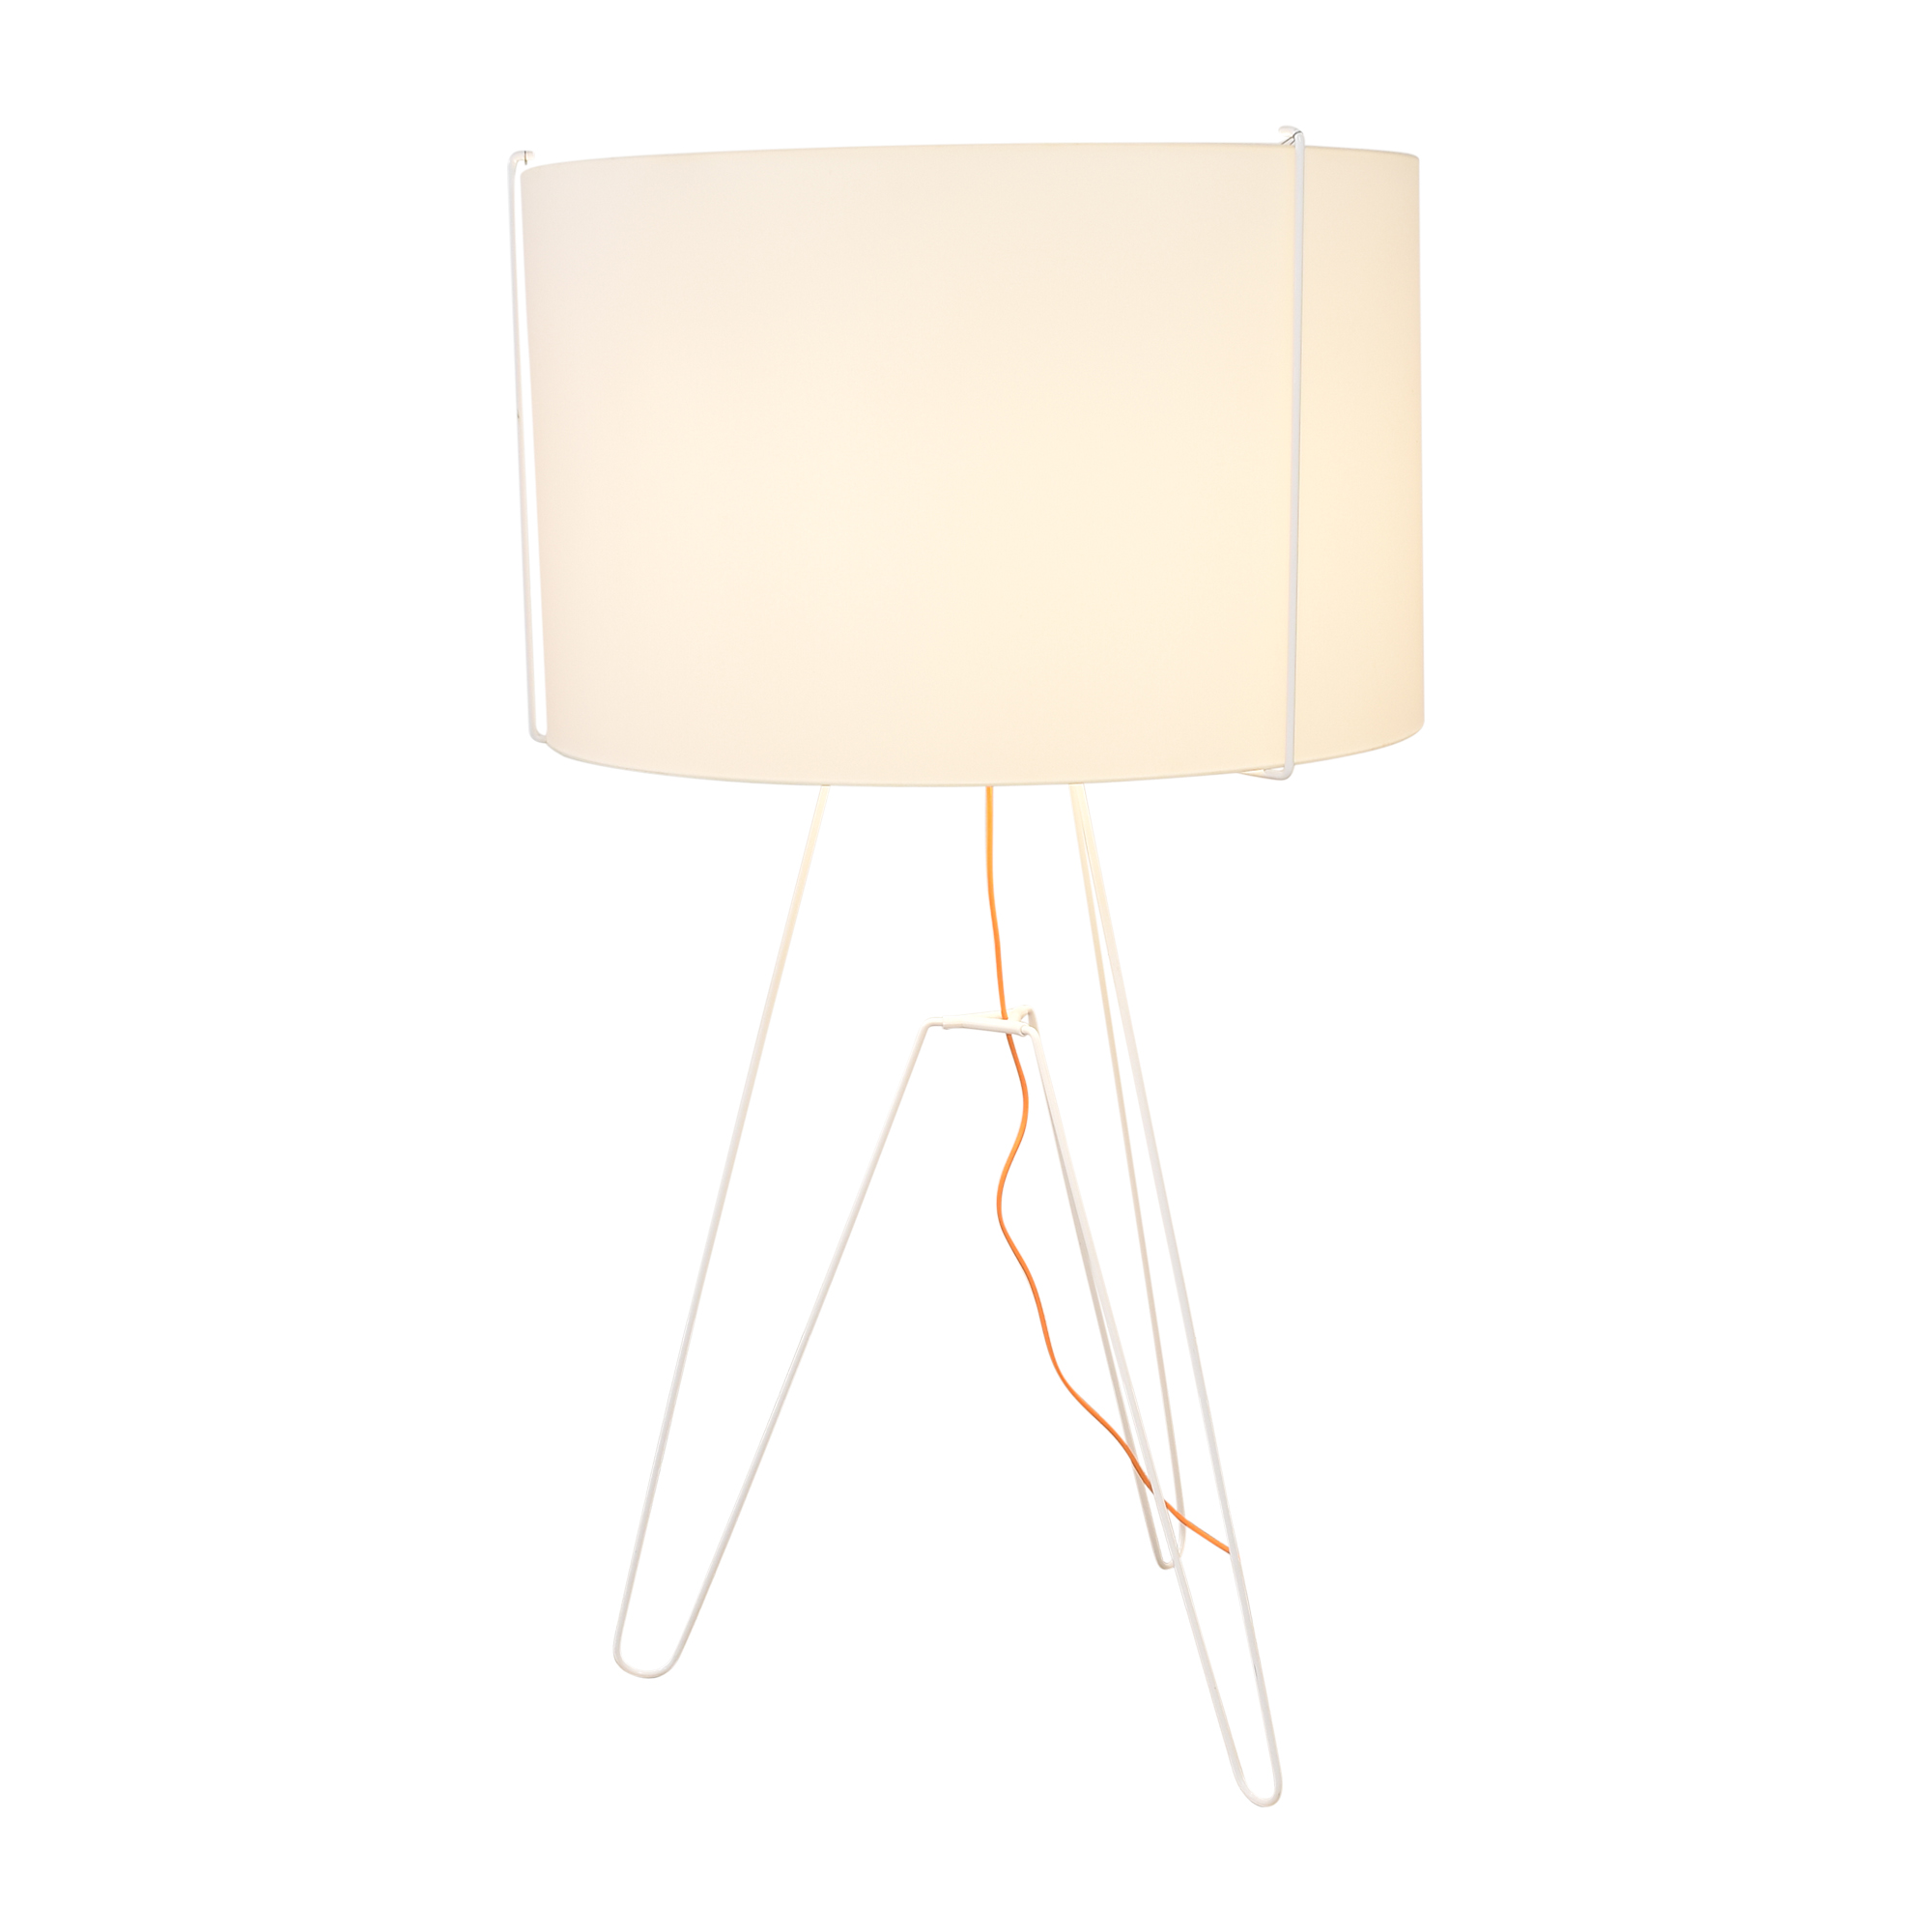 Tripod Style Floor Lamp coupon